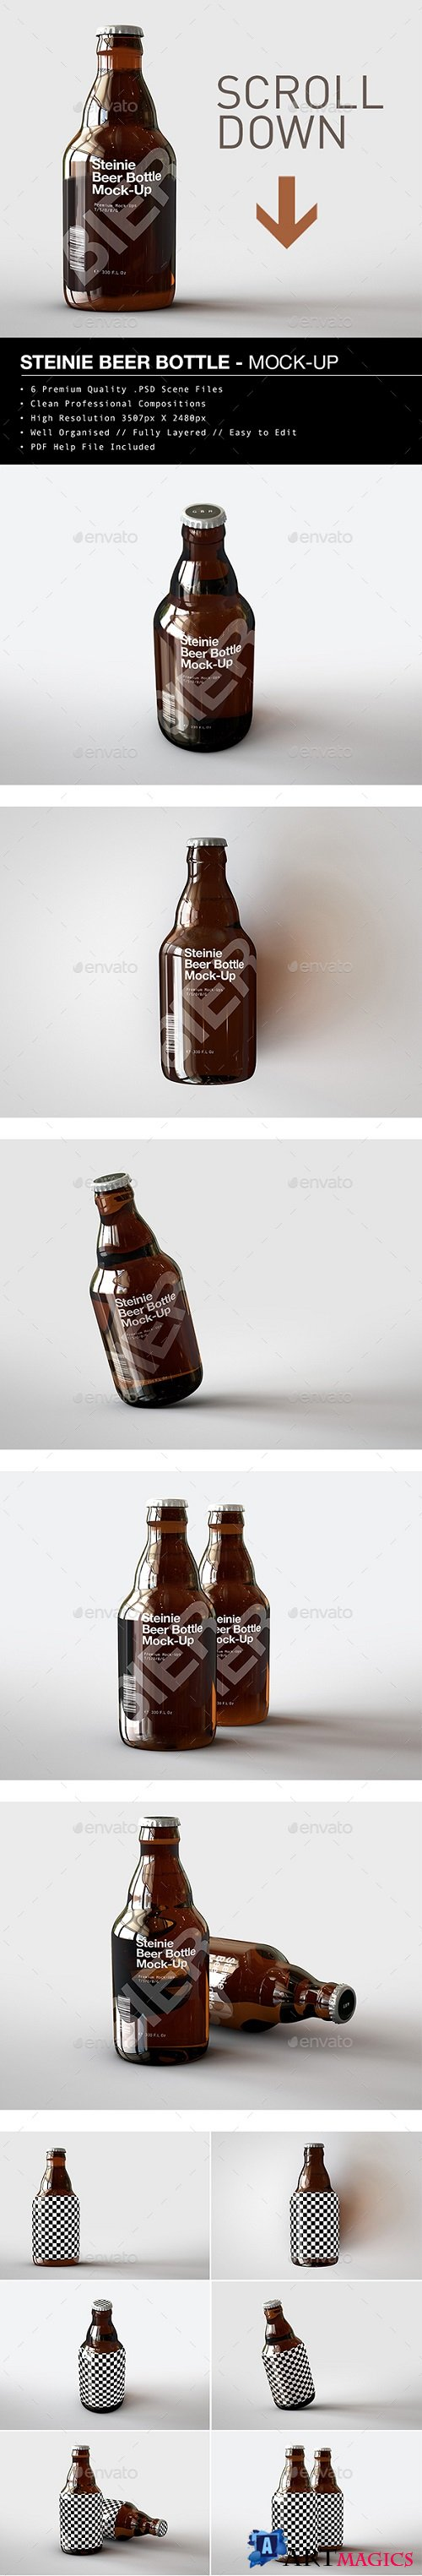 Beer Bottle Mock-Up | Steinie Edition 21402018